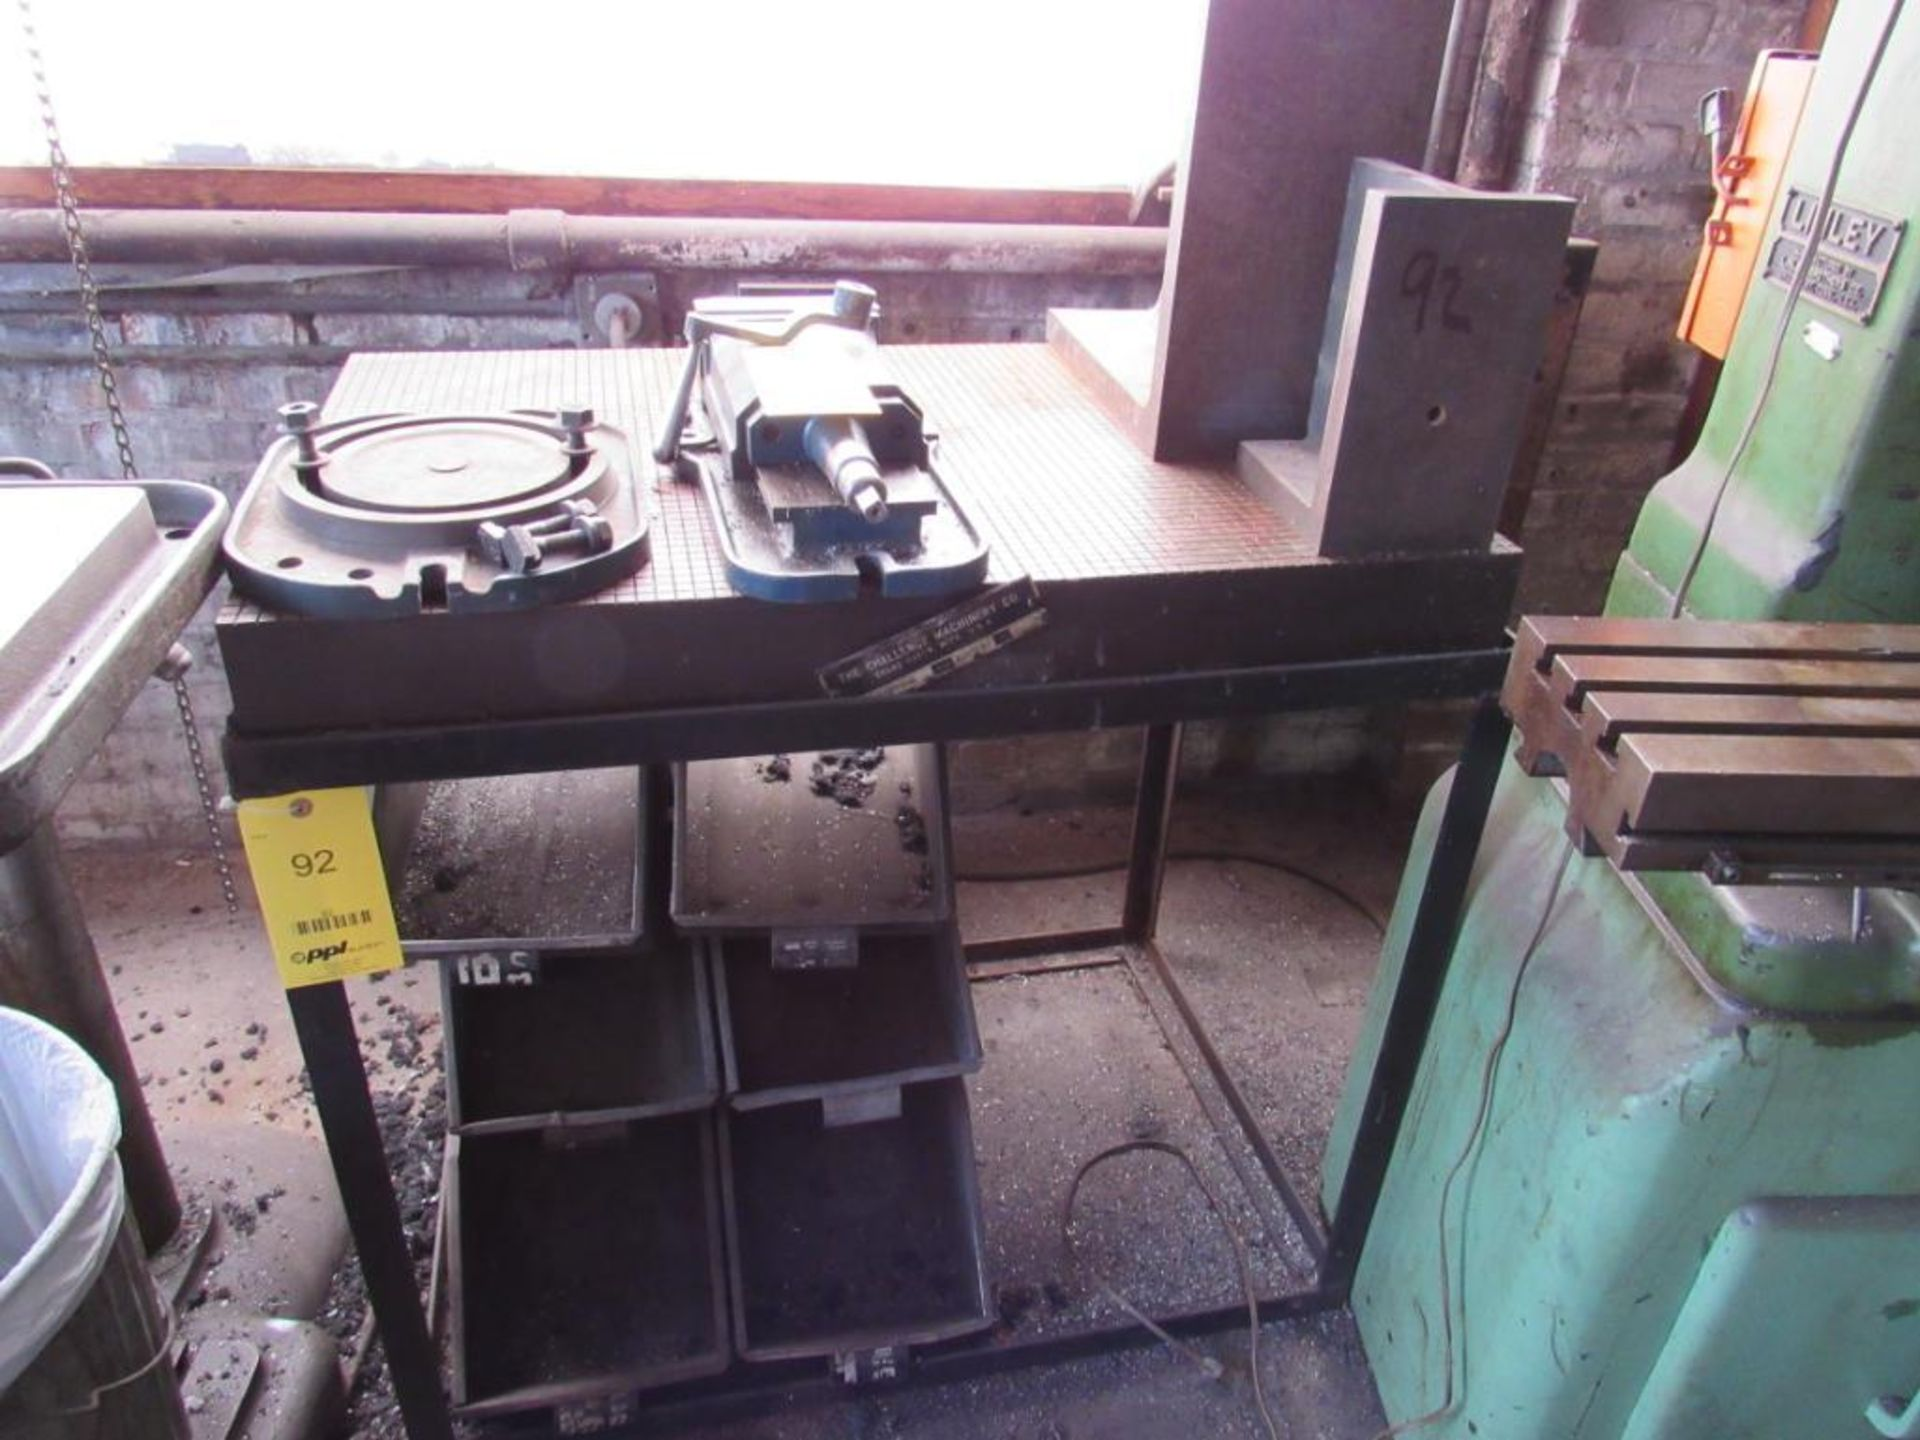 Lot 92 - LOT: (1) 24 in. x 36 in. Steel Surface Plate on Stand, (2) Assorted Angle Plates